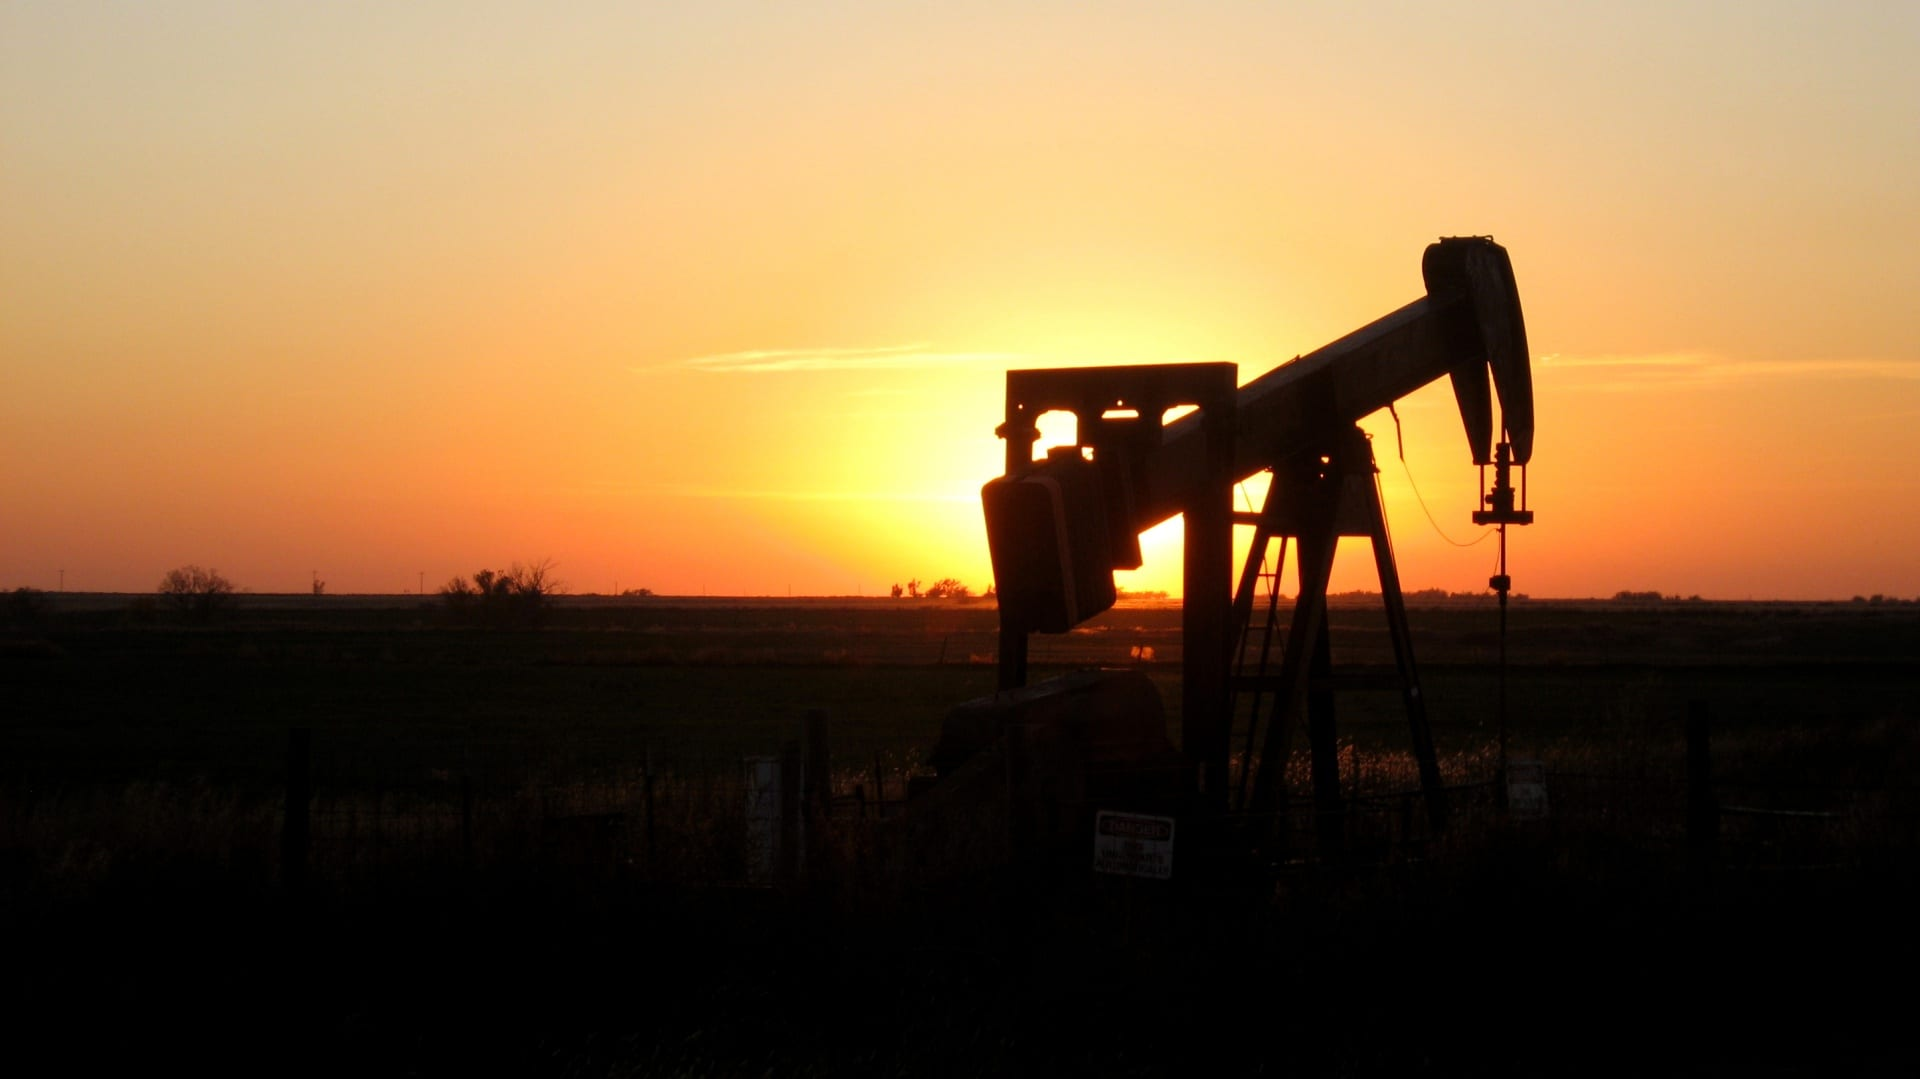 Orange sky and the sun near the horizon, silhouetting an oil pump in the foreground.